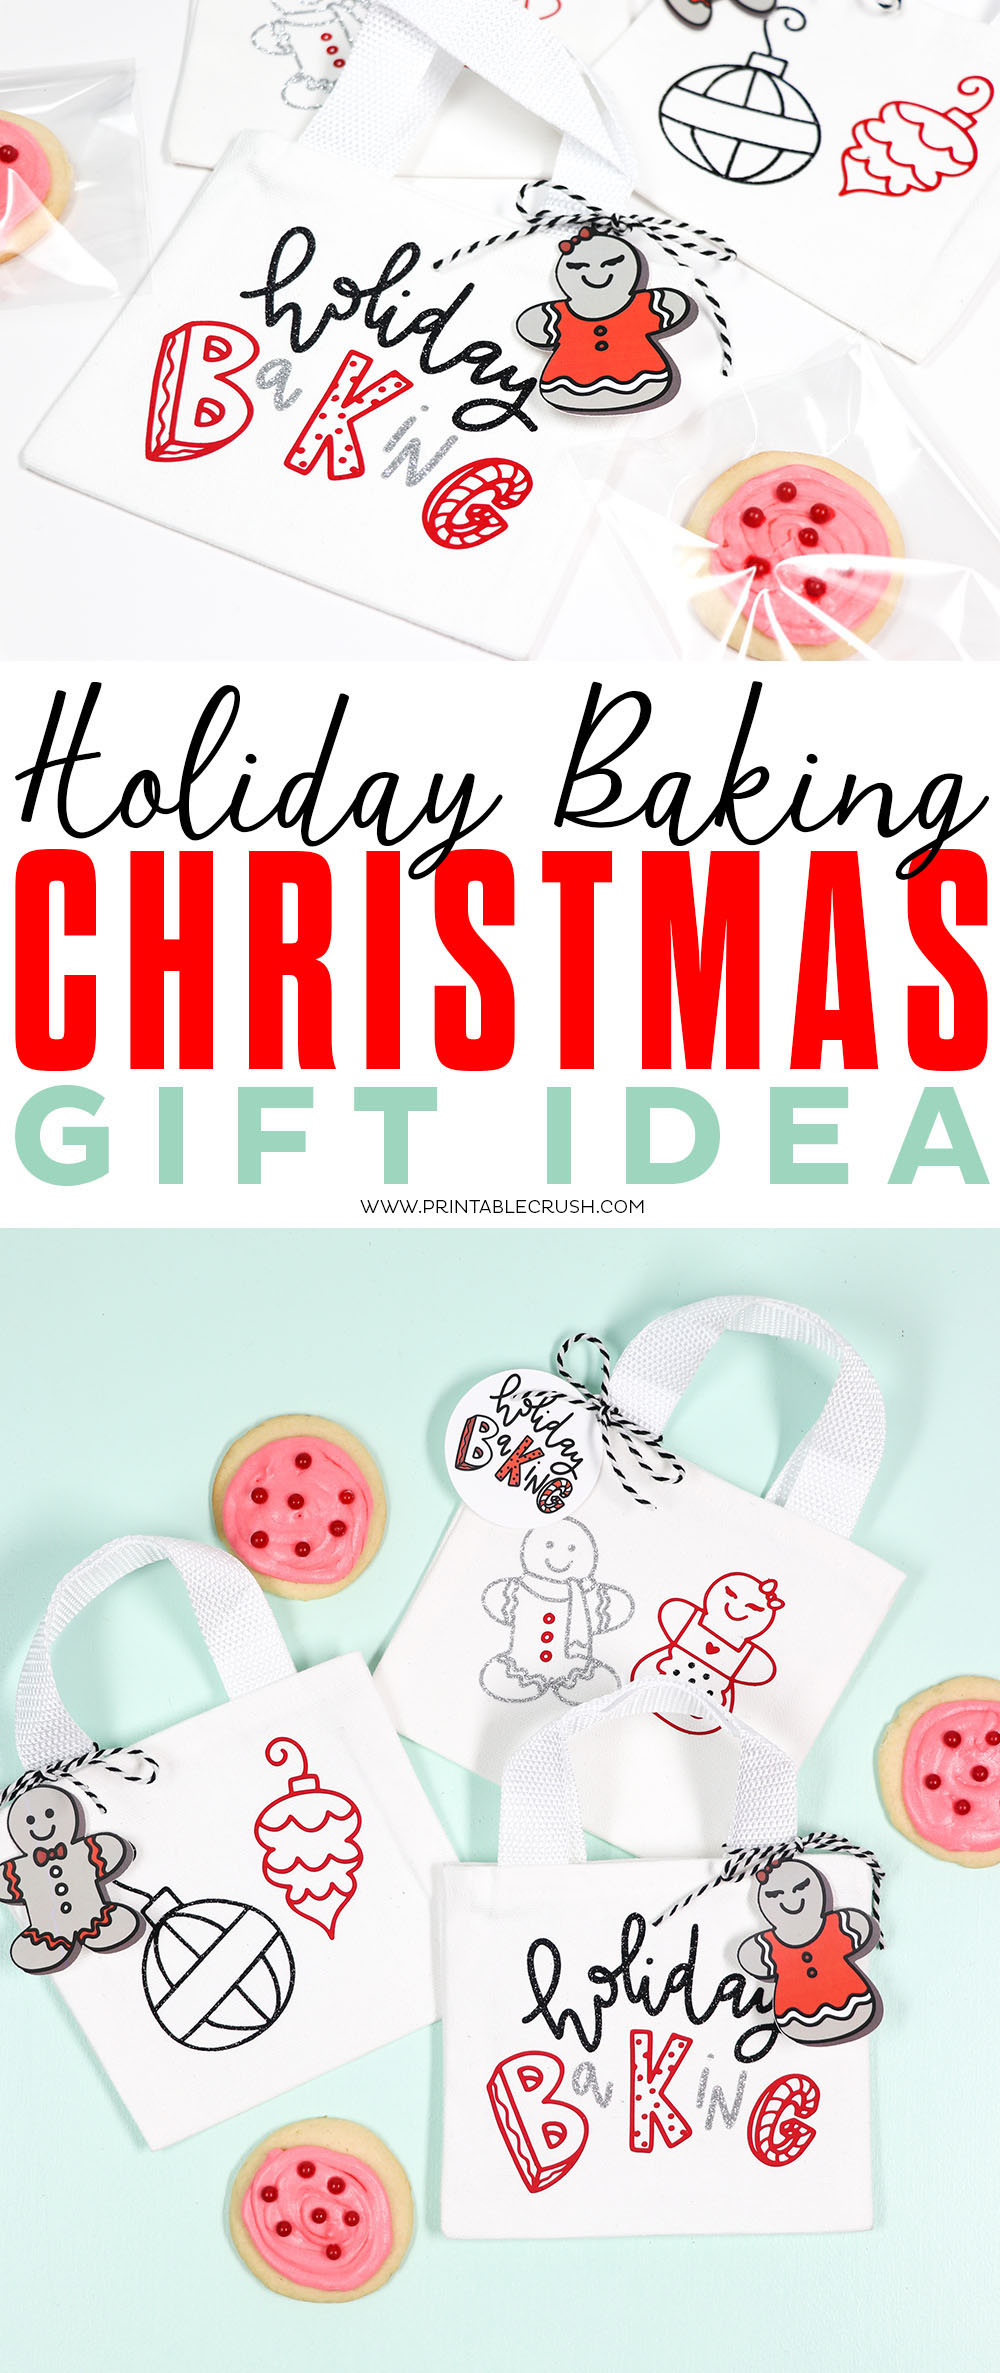 These Holiday Baking Christmas Gifts are too cute and so easy to make with the Cricut EasyPress!